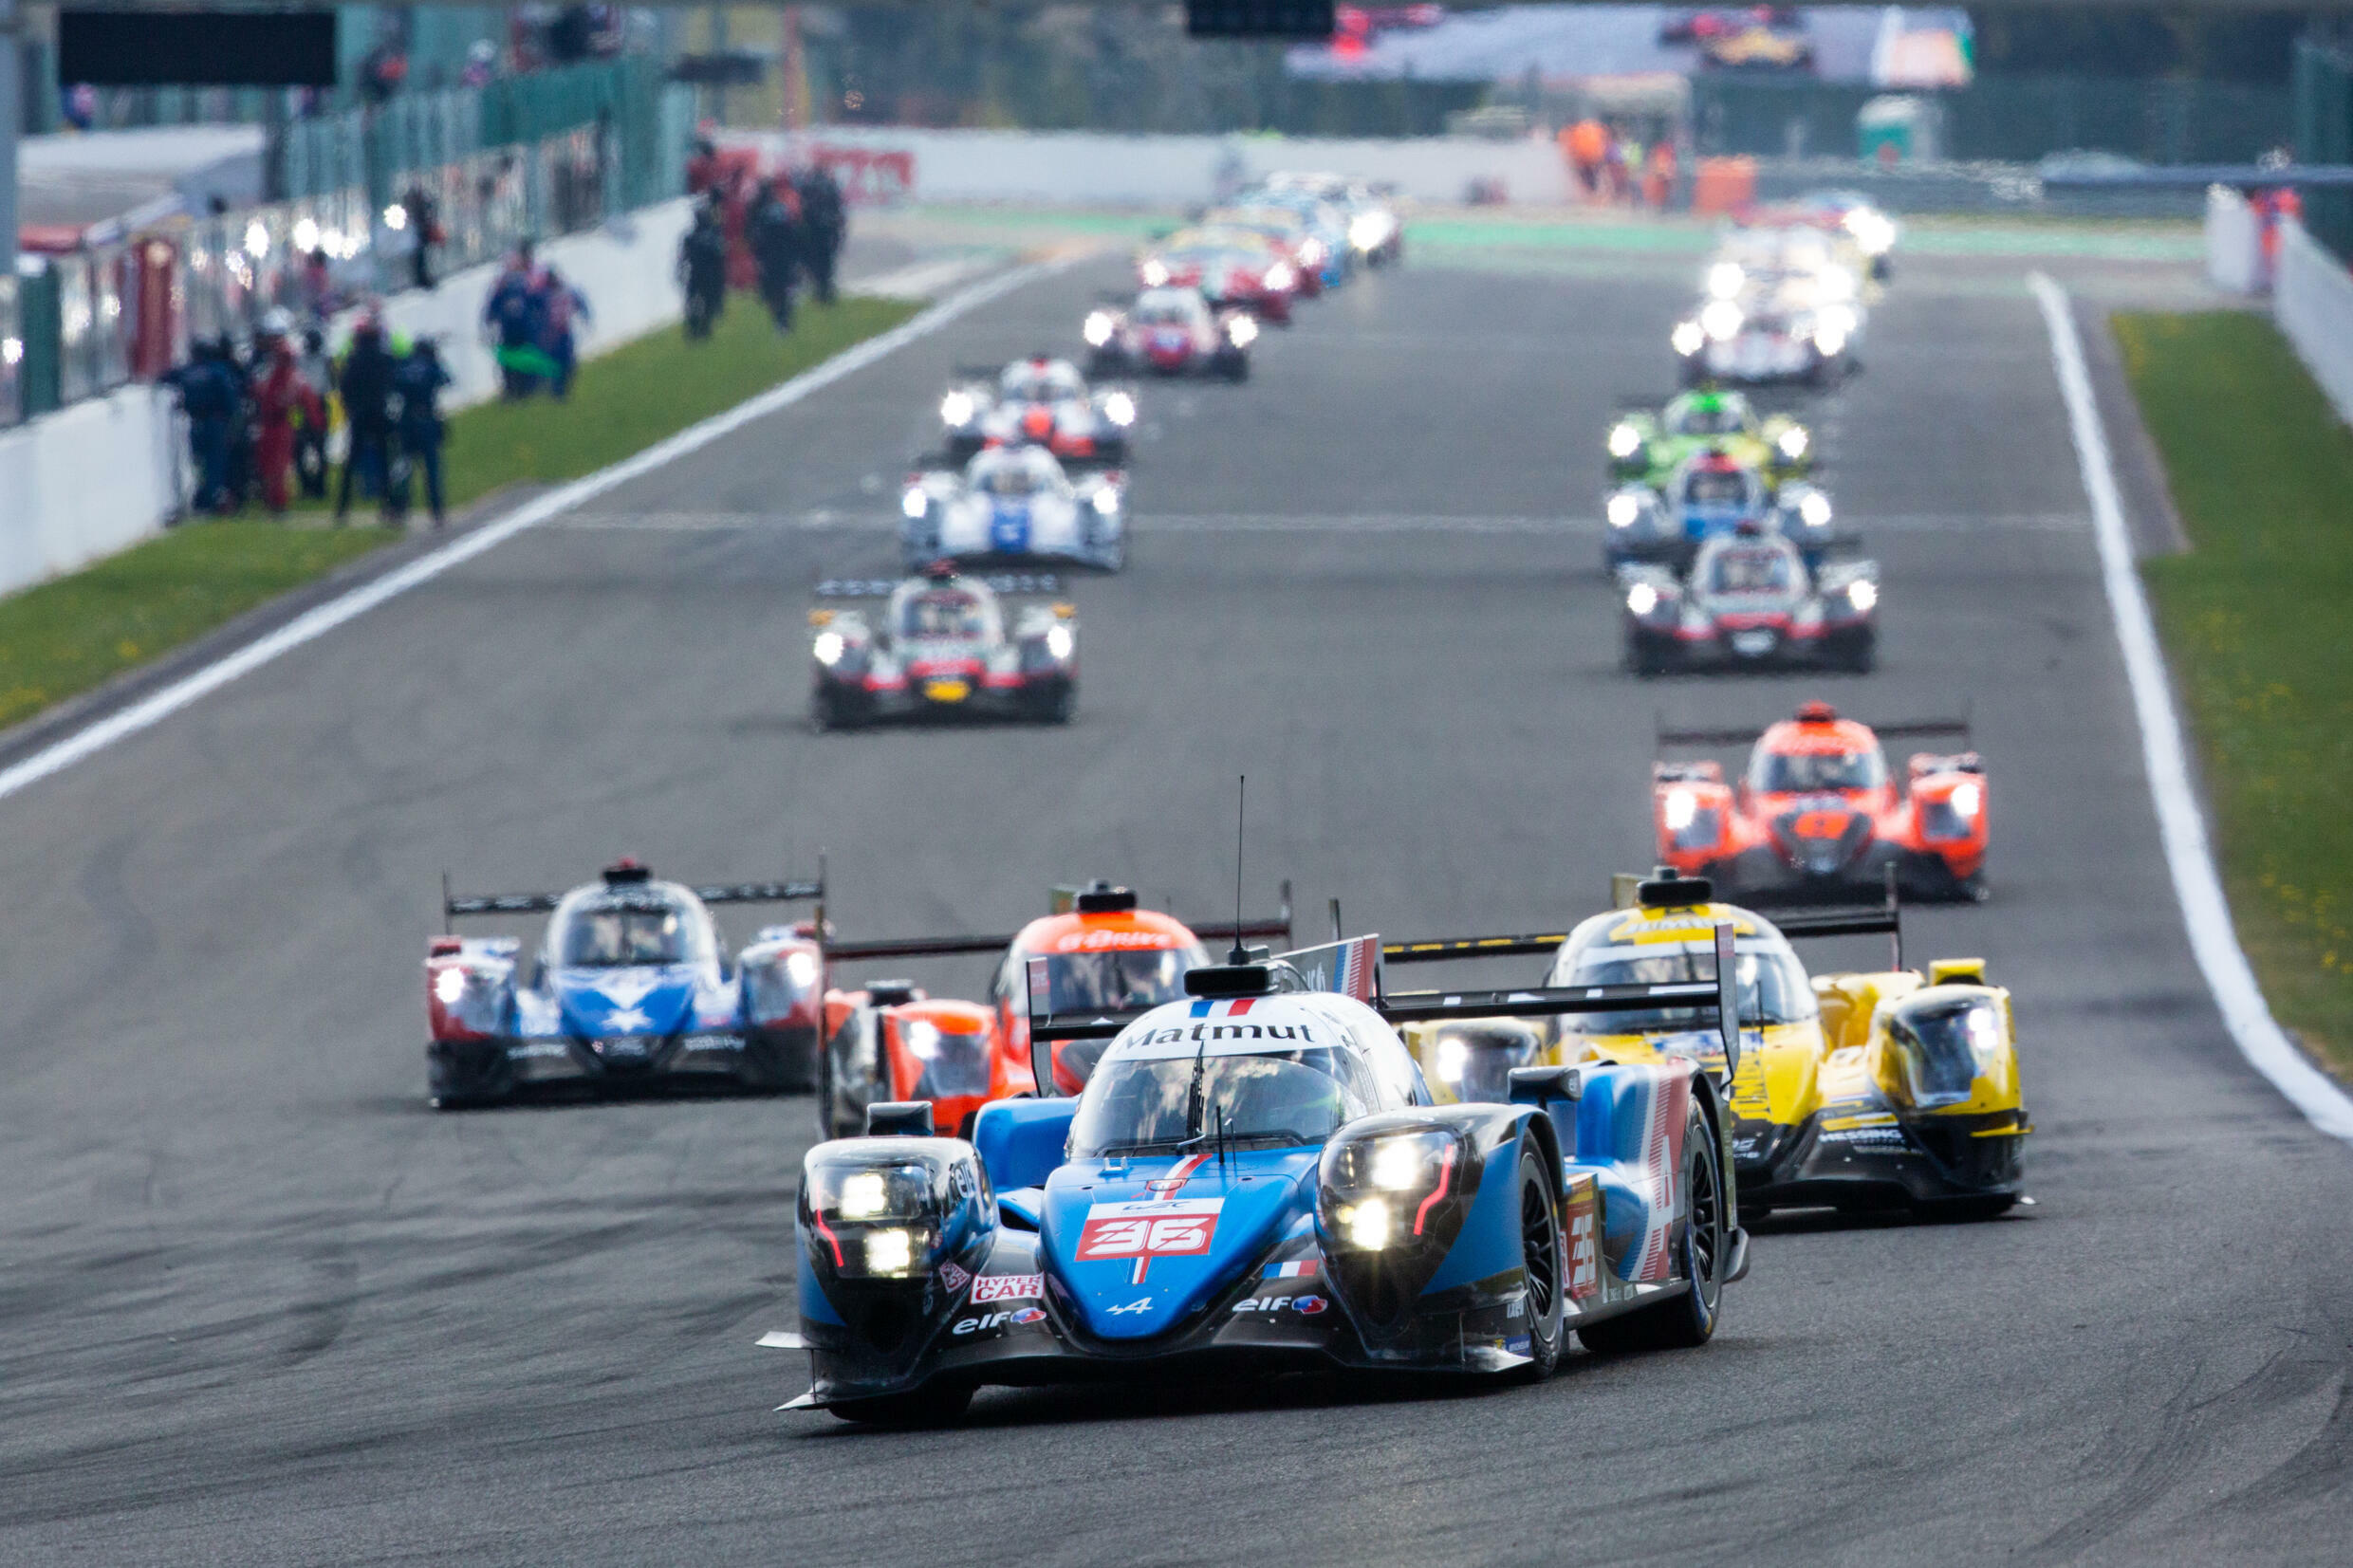 2021 - WEC 6 Hours of Spa-Francorchamps